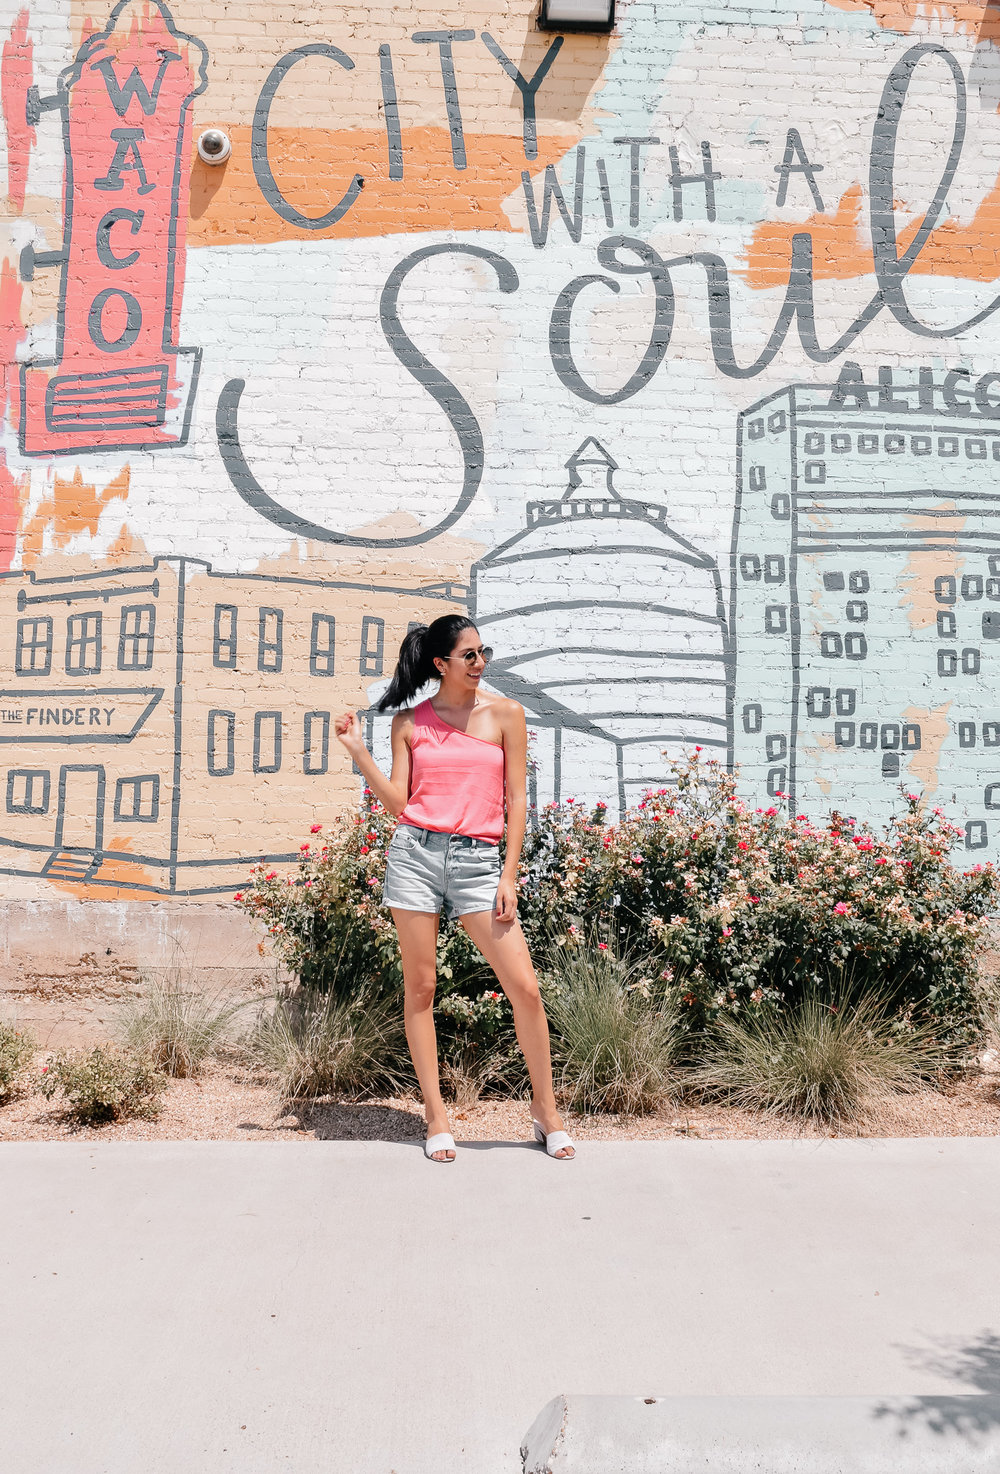 City with a Soul Mural in Waco